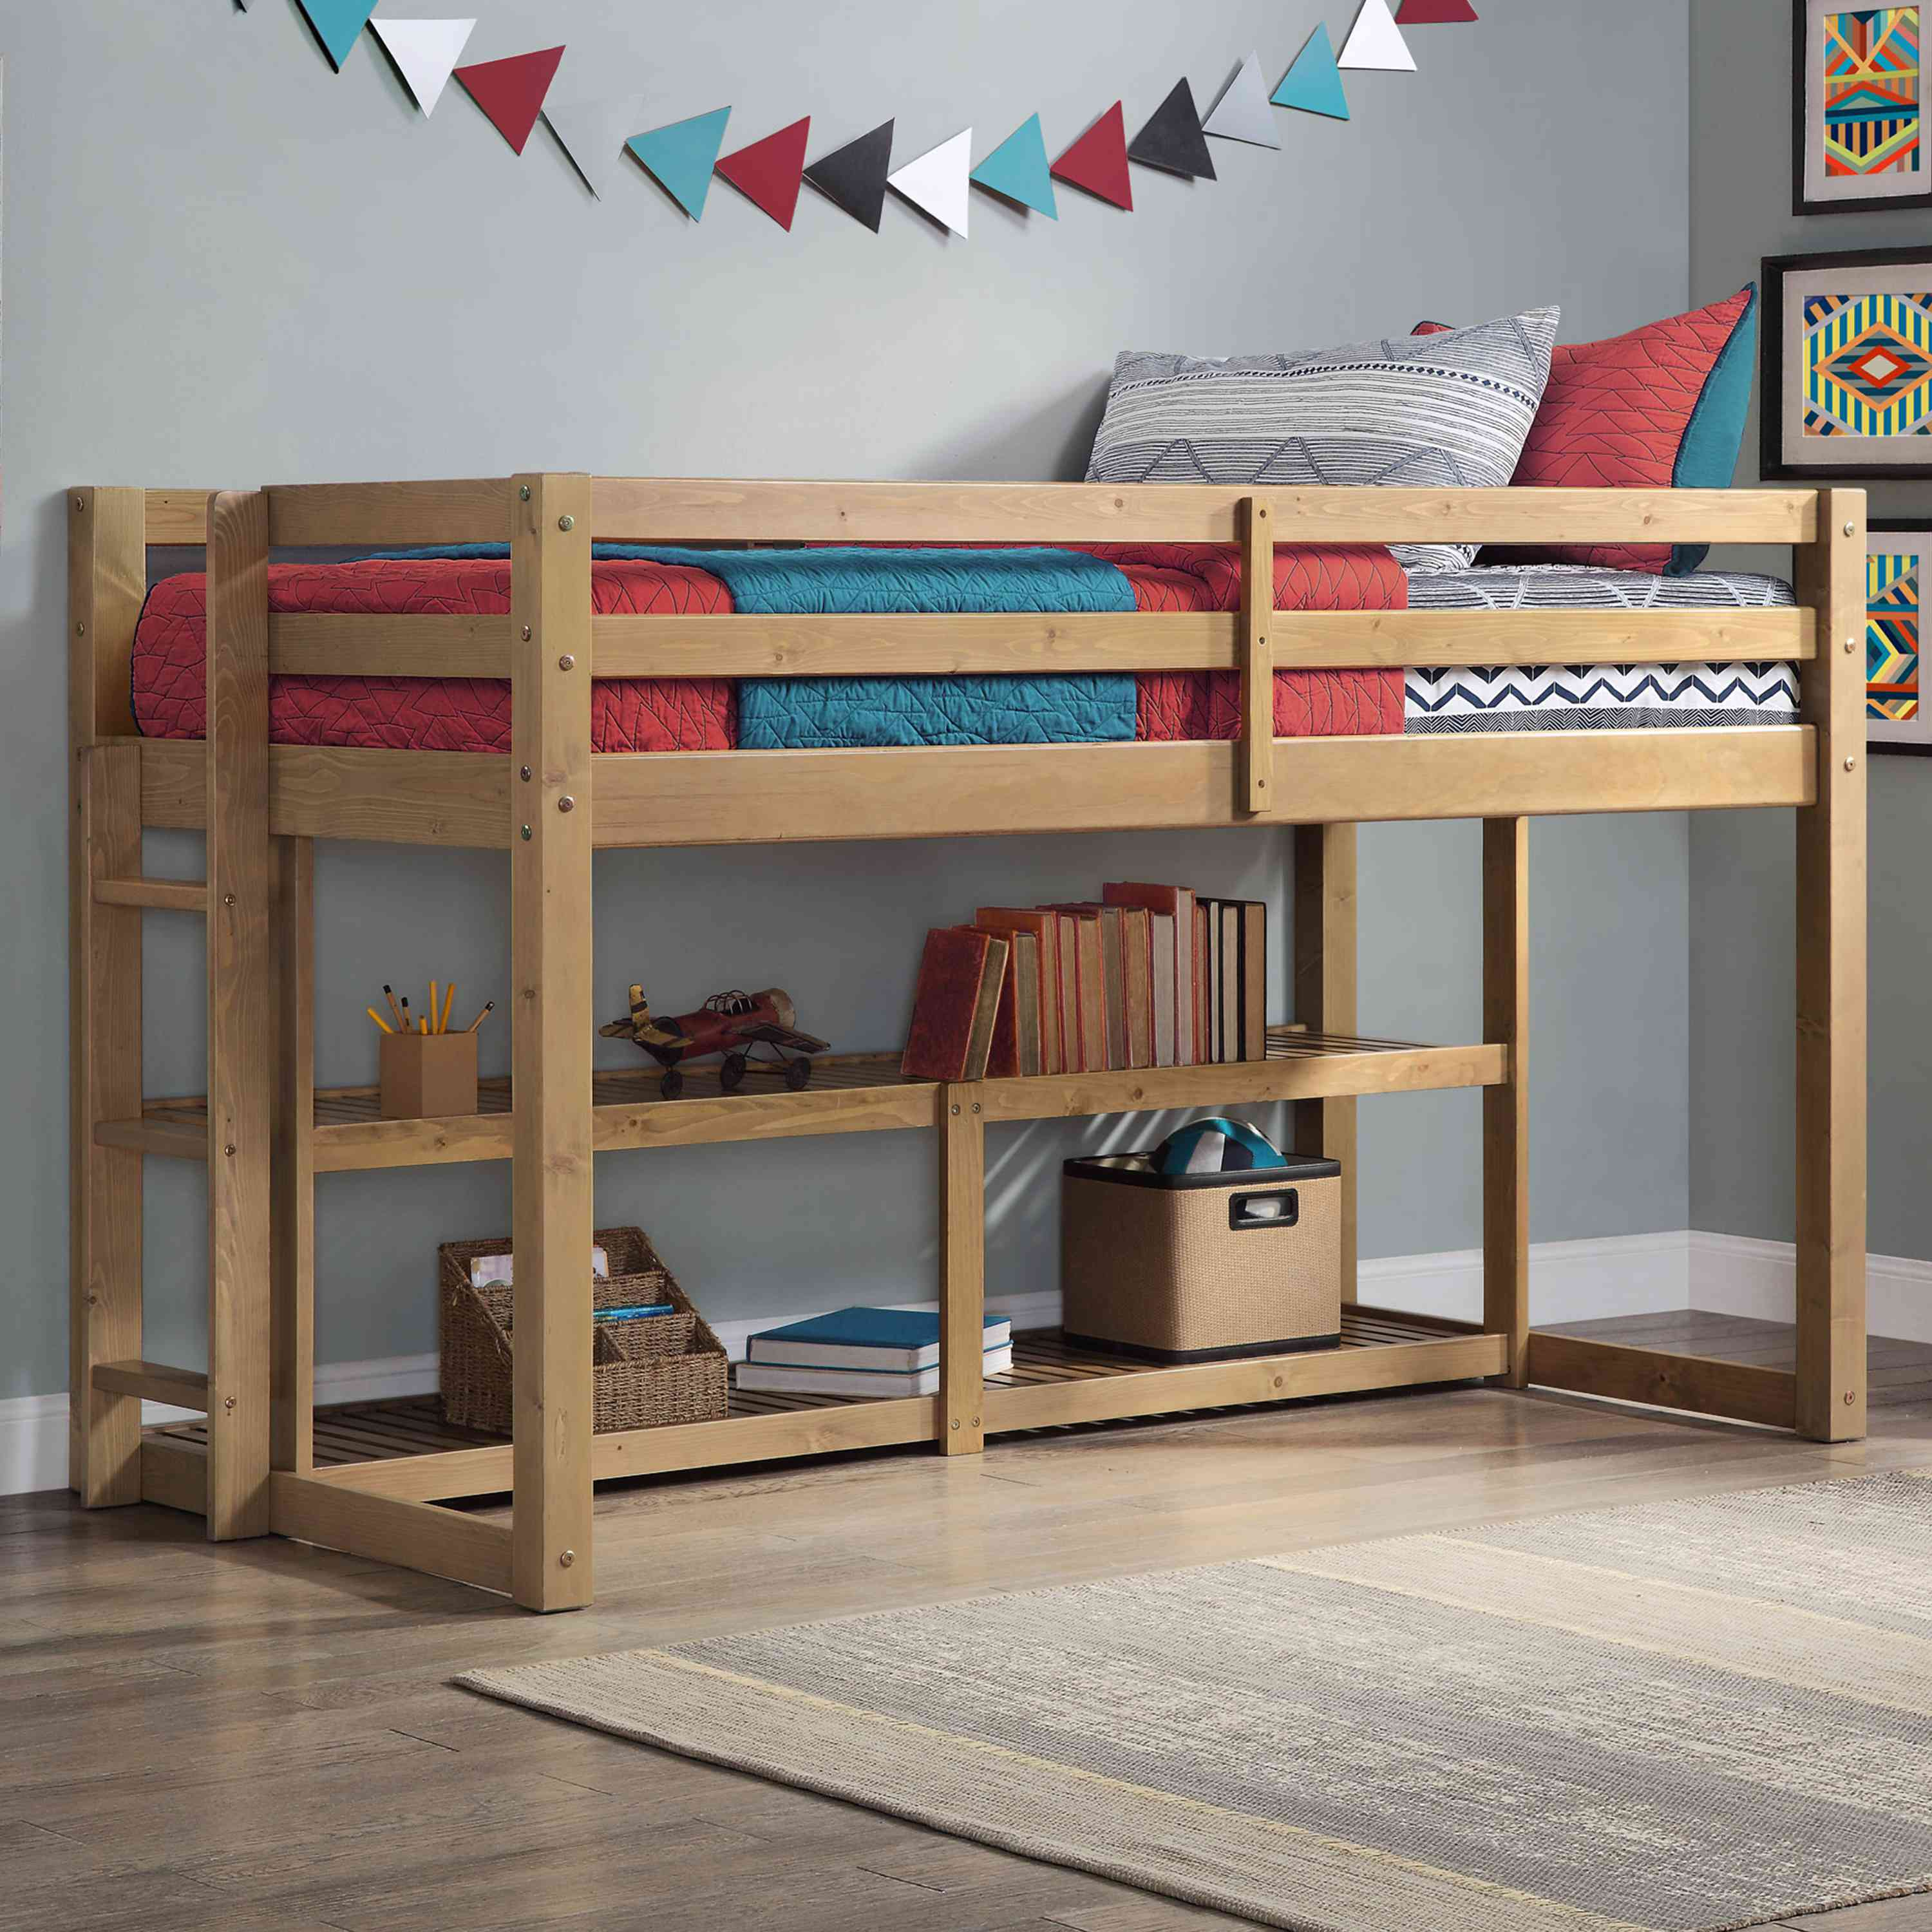 The 9 Best Loft Beds Of 2021